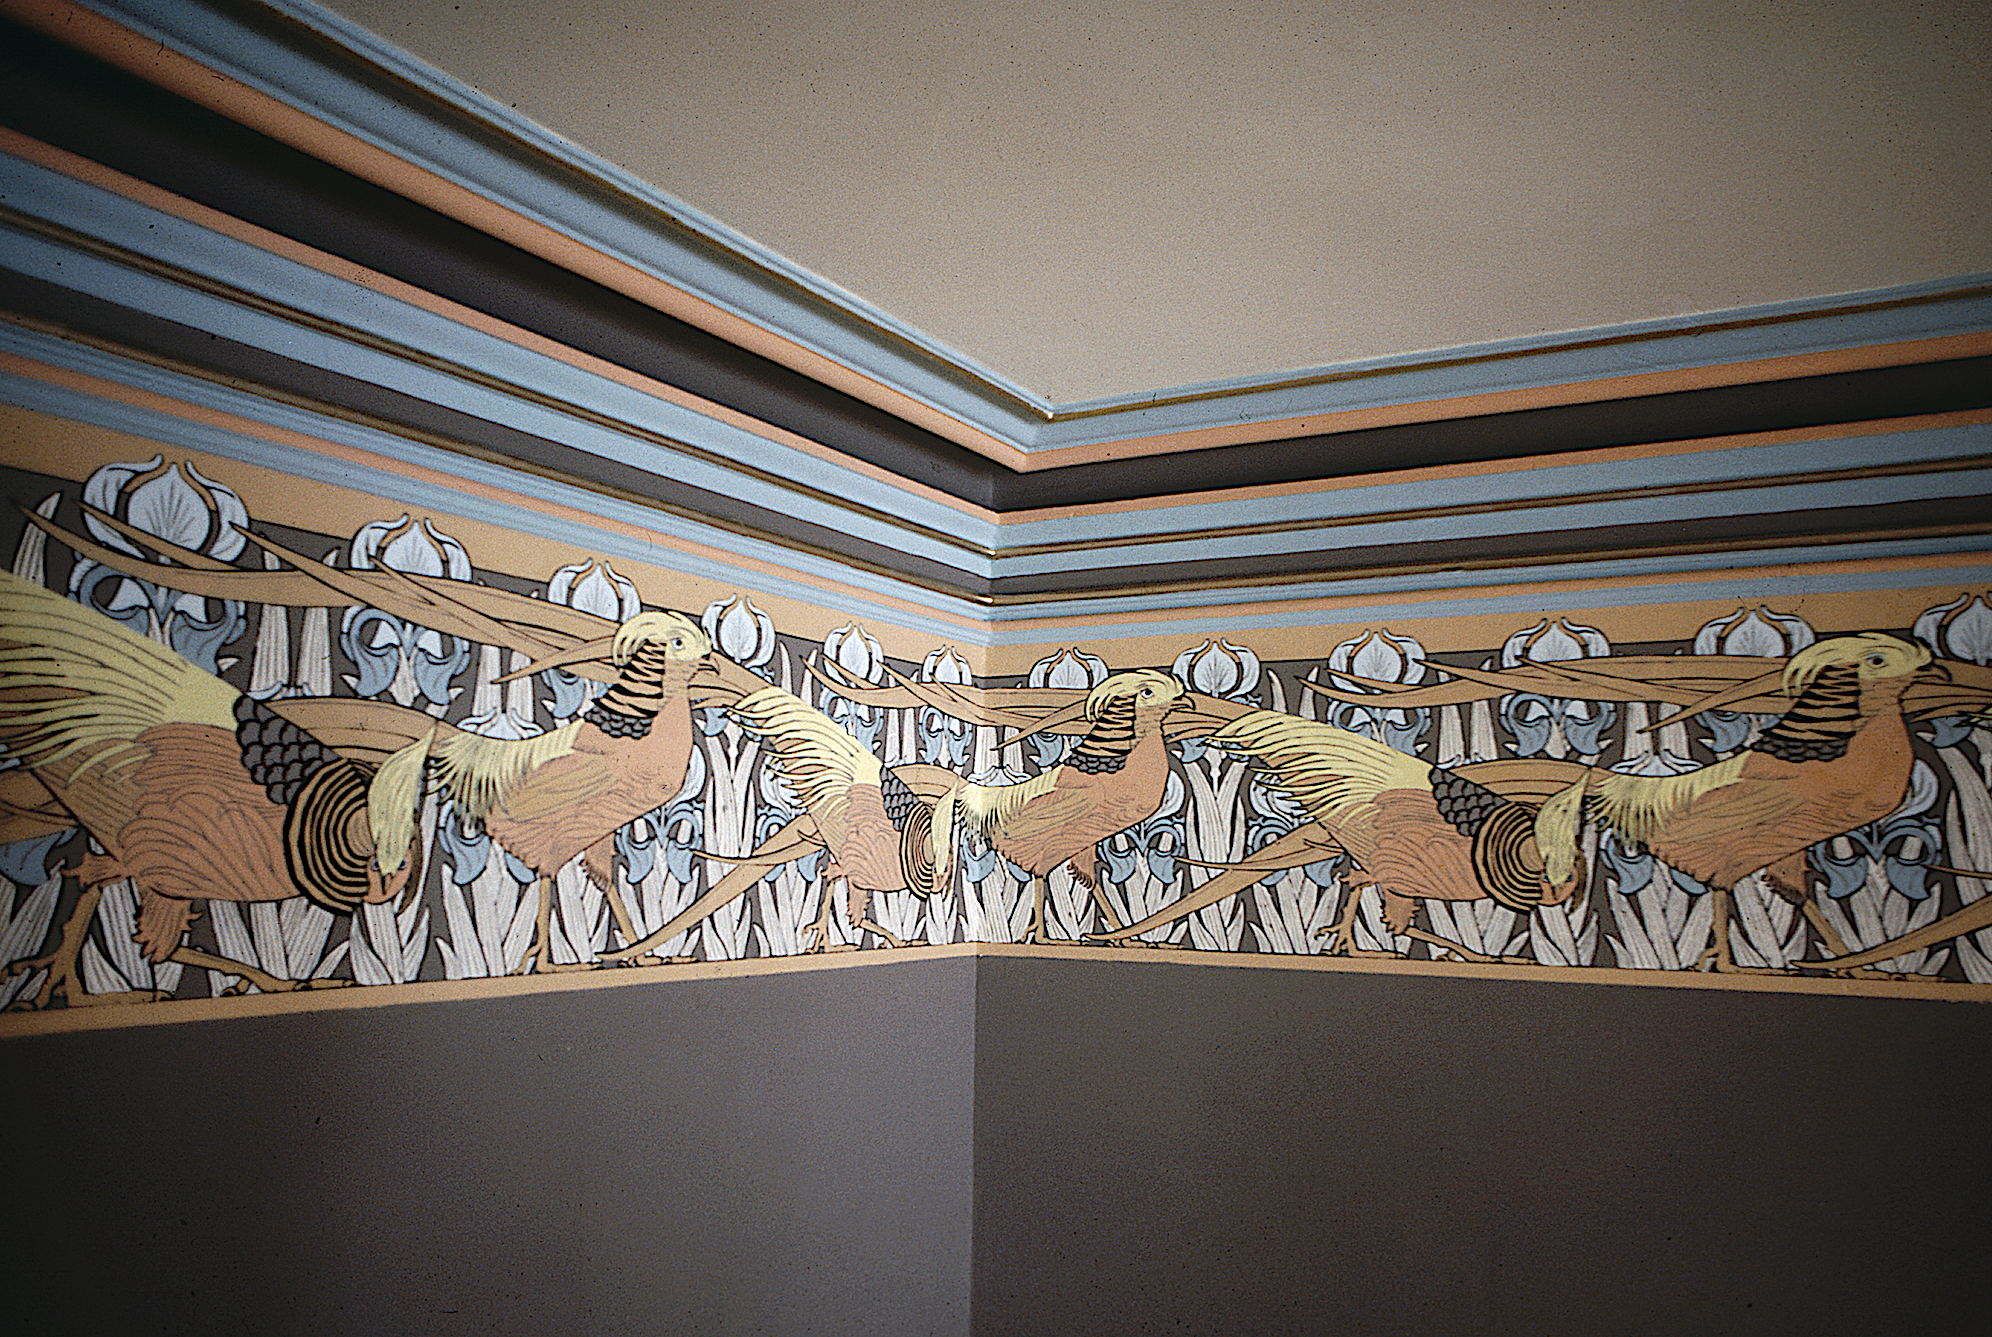 Frieze and crown molding detail at the Zen Center in San Francisco. Photo by Emma Wright.